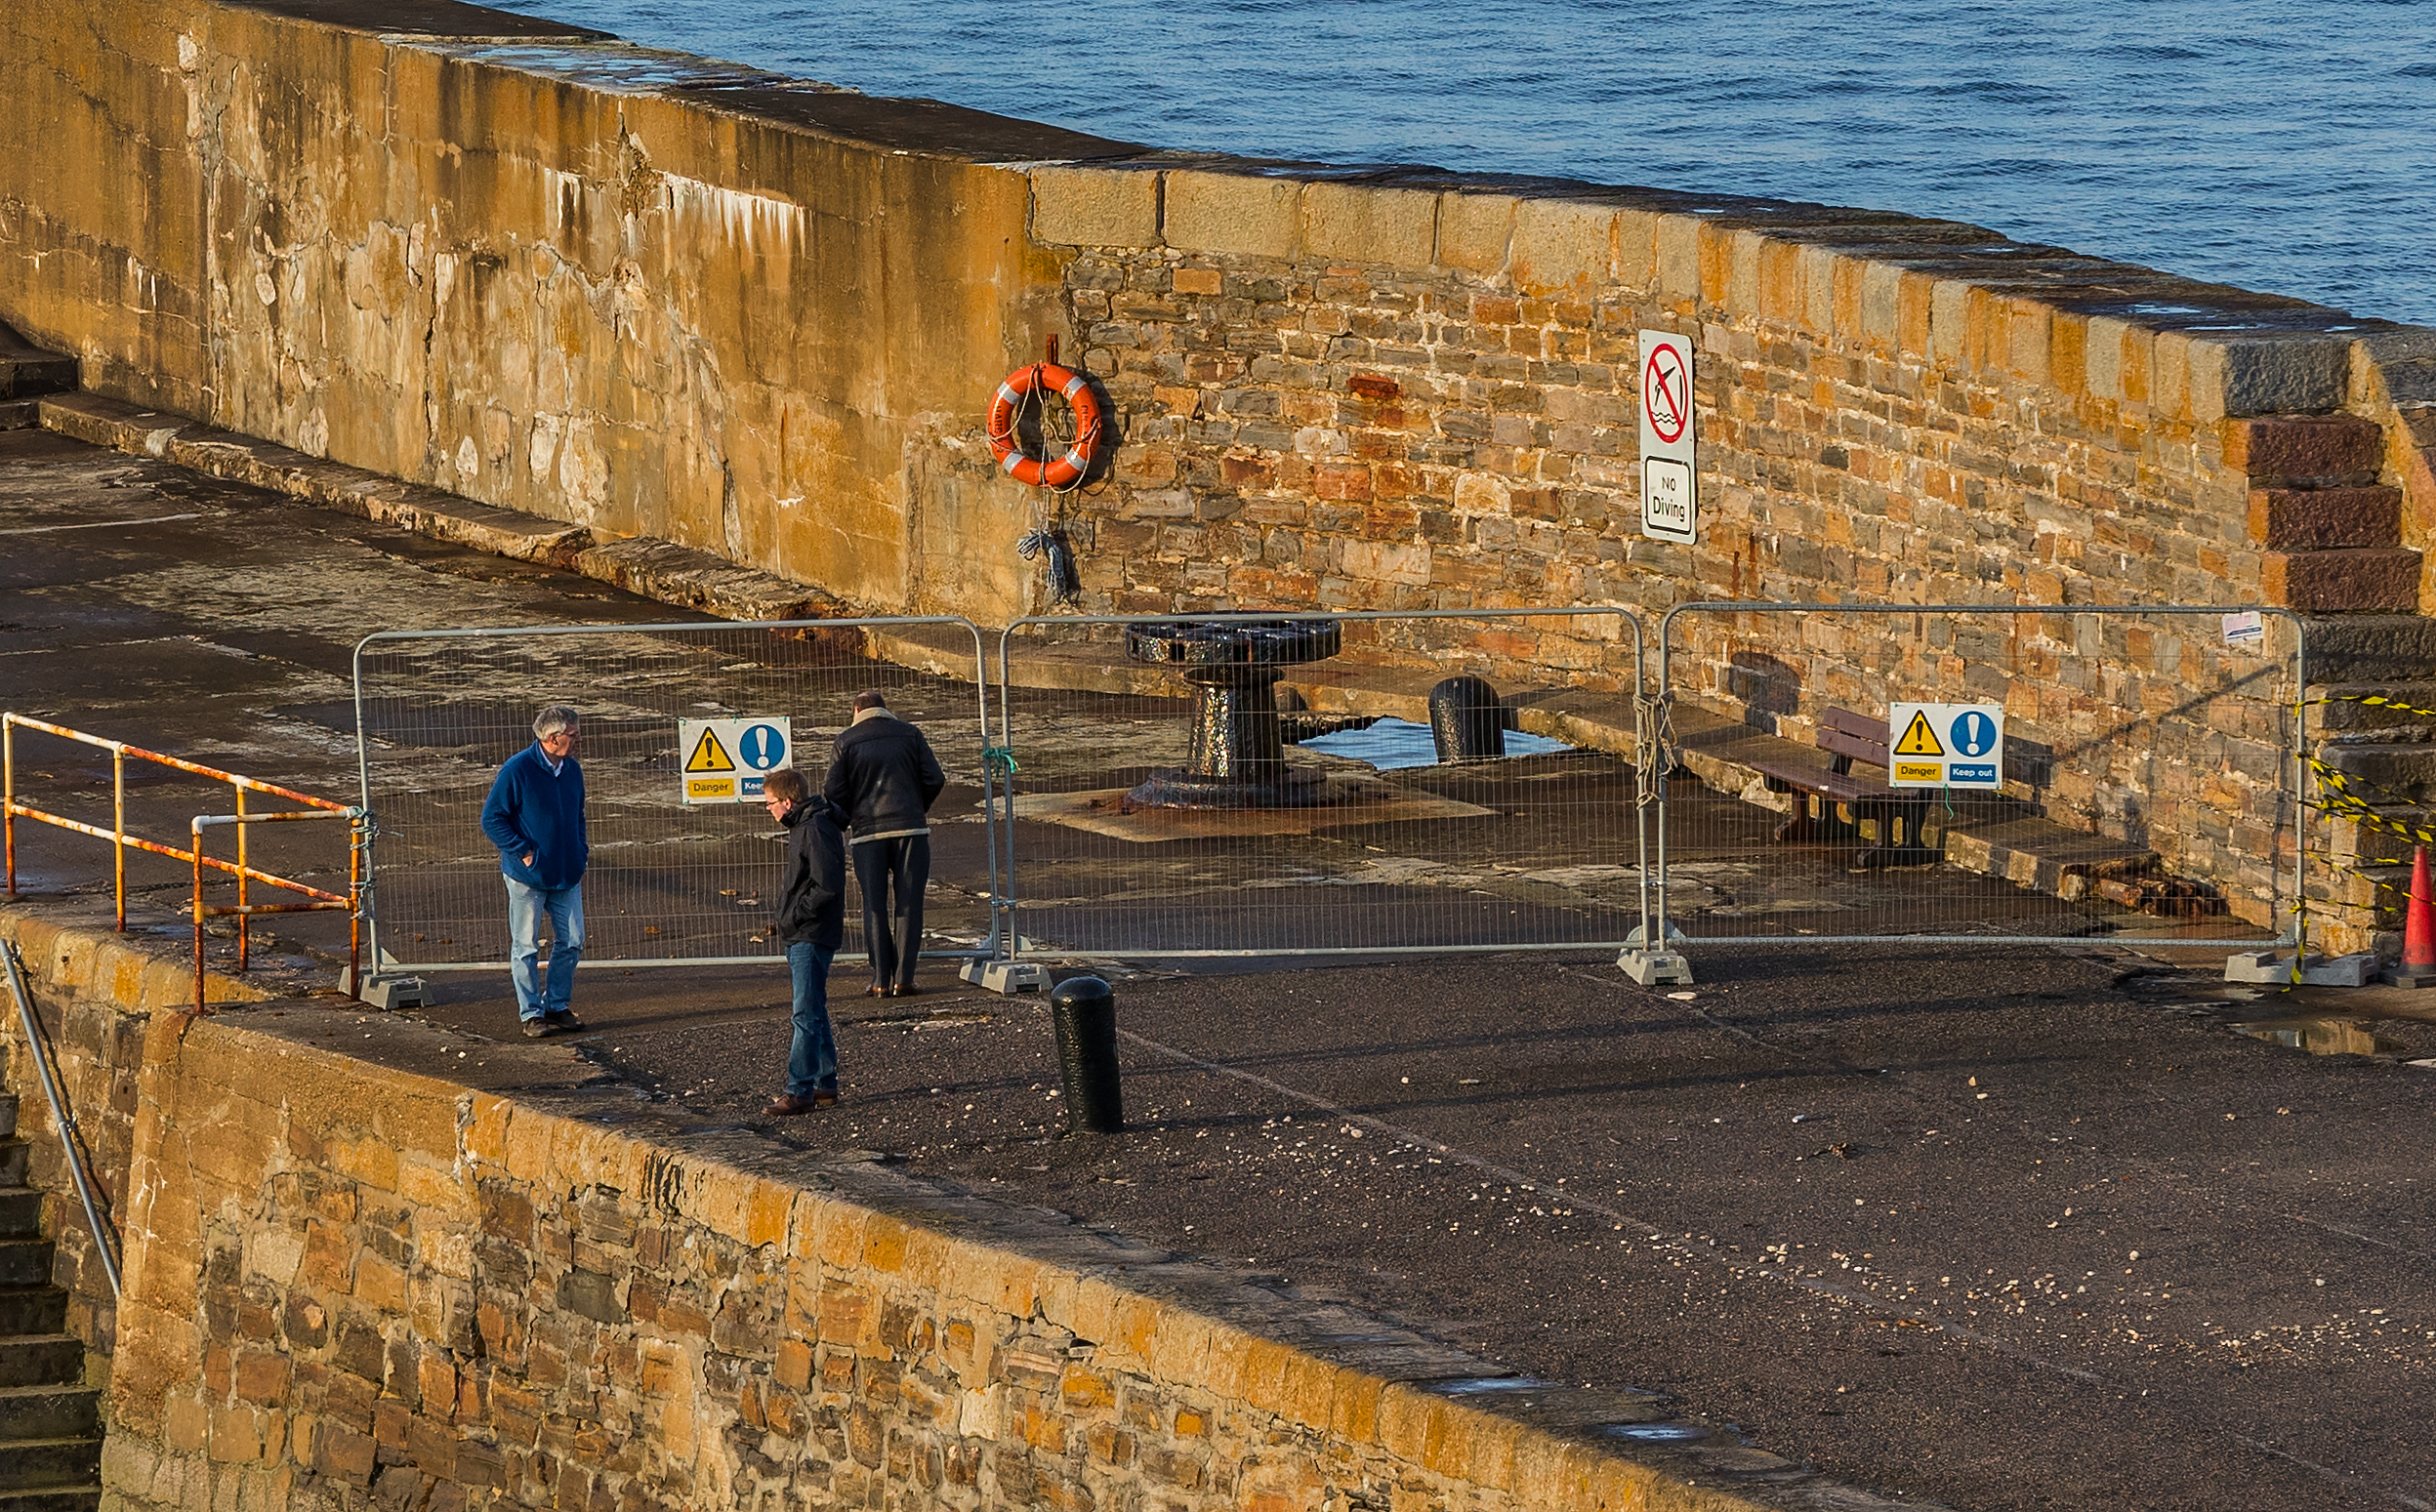 The north pier at Cullen Harbour has been sealed off after part of it collapsed into the sea.